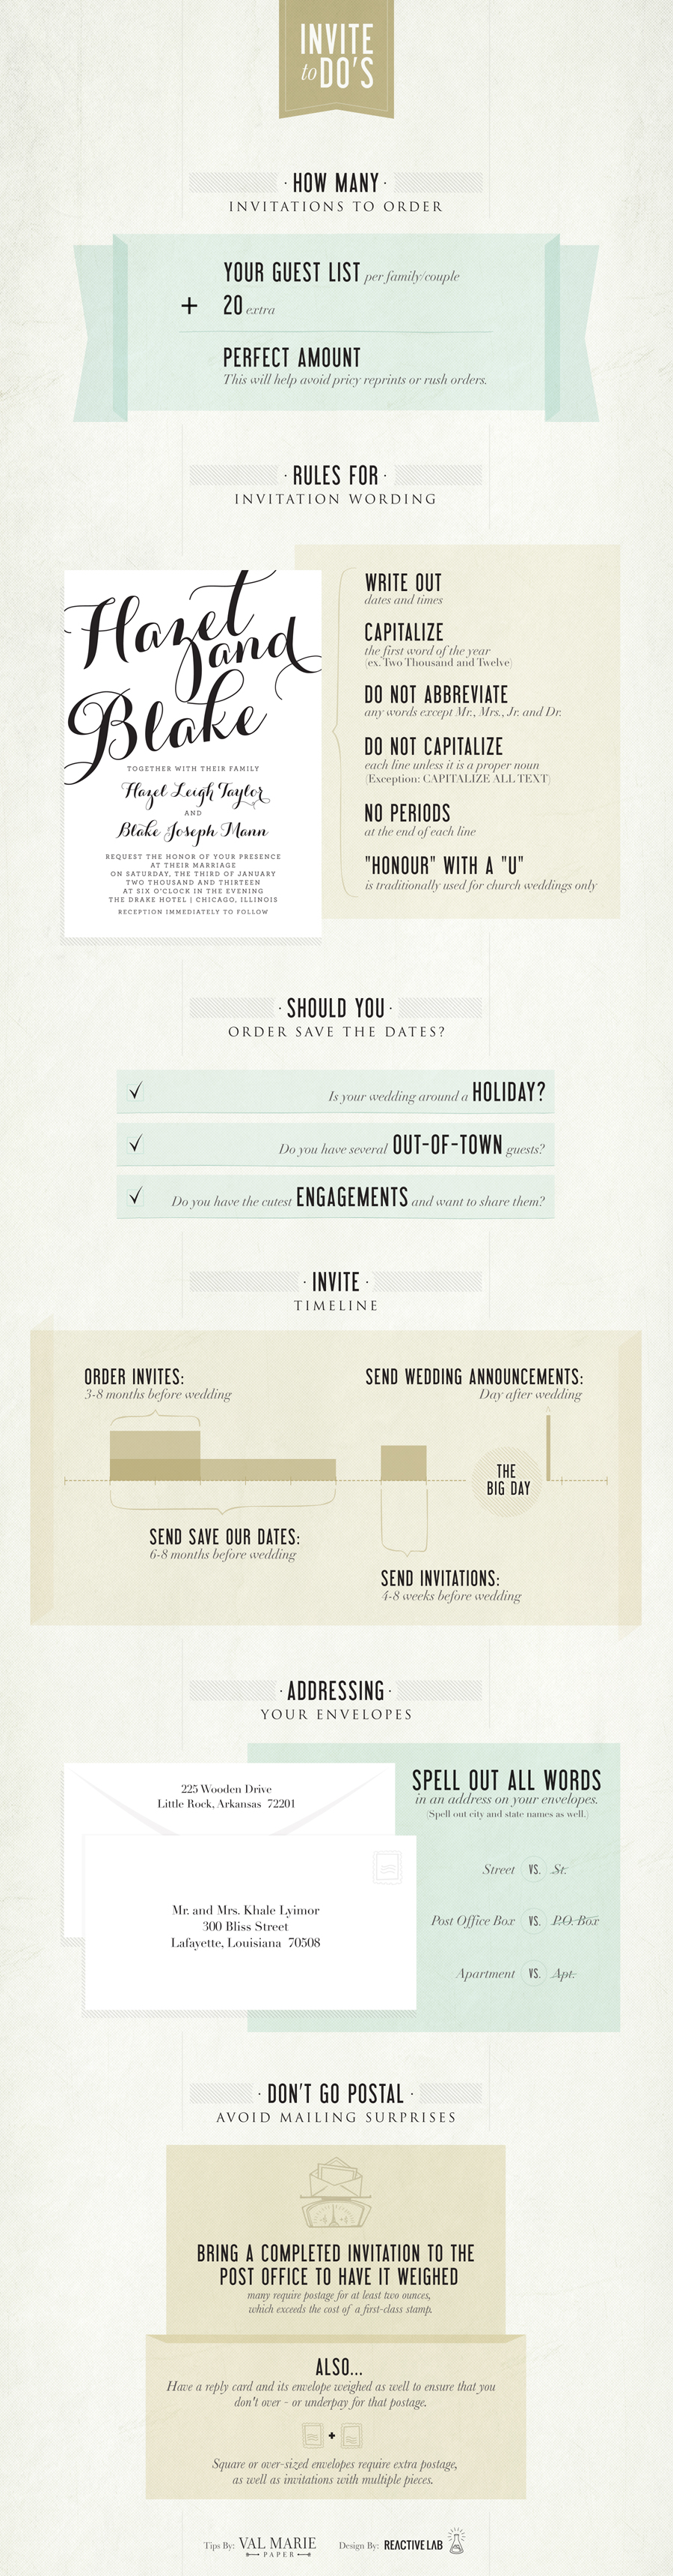 Wedding Invitations: Everything You Need To Know! via TheELD.com